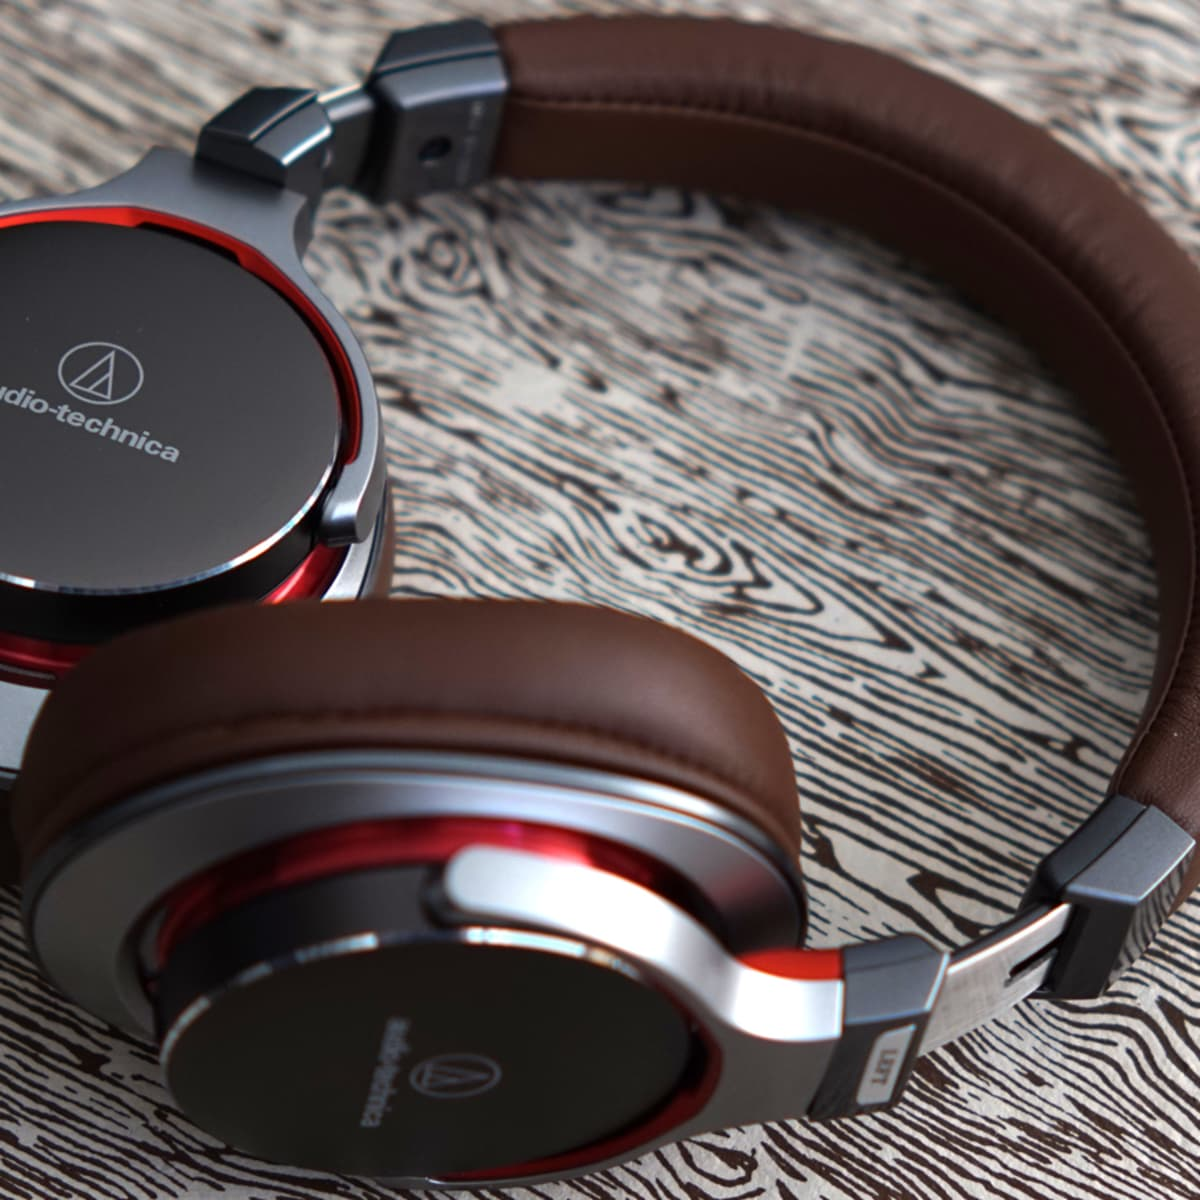 640e83db02d The Best Headphones of 2019 - Reviewed Headphones